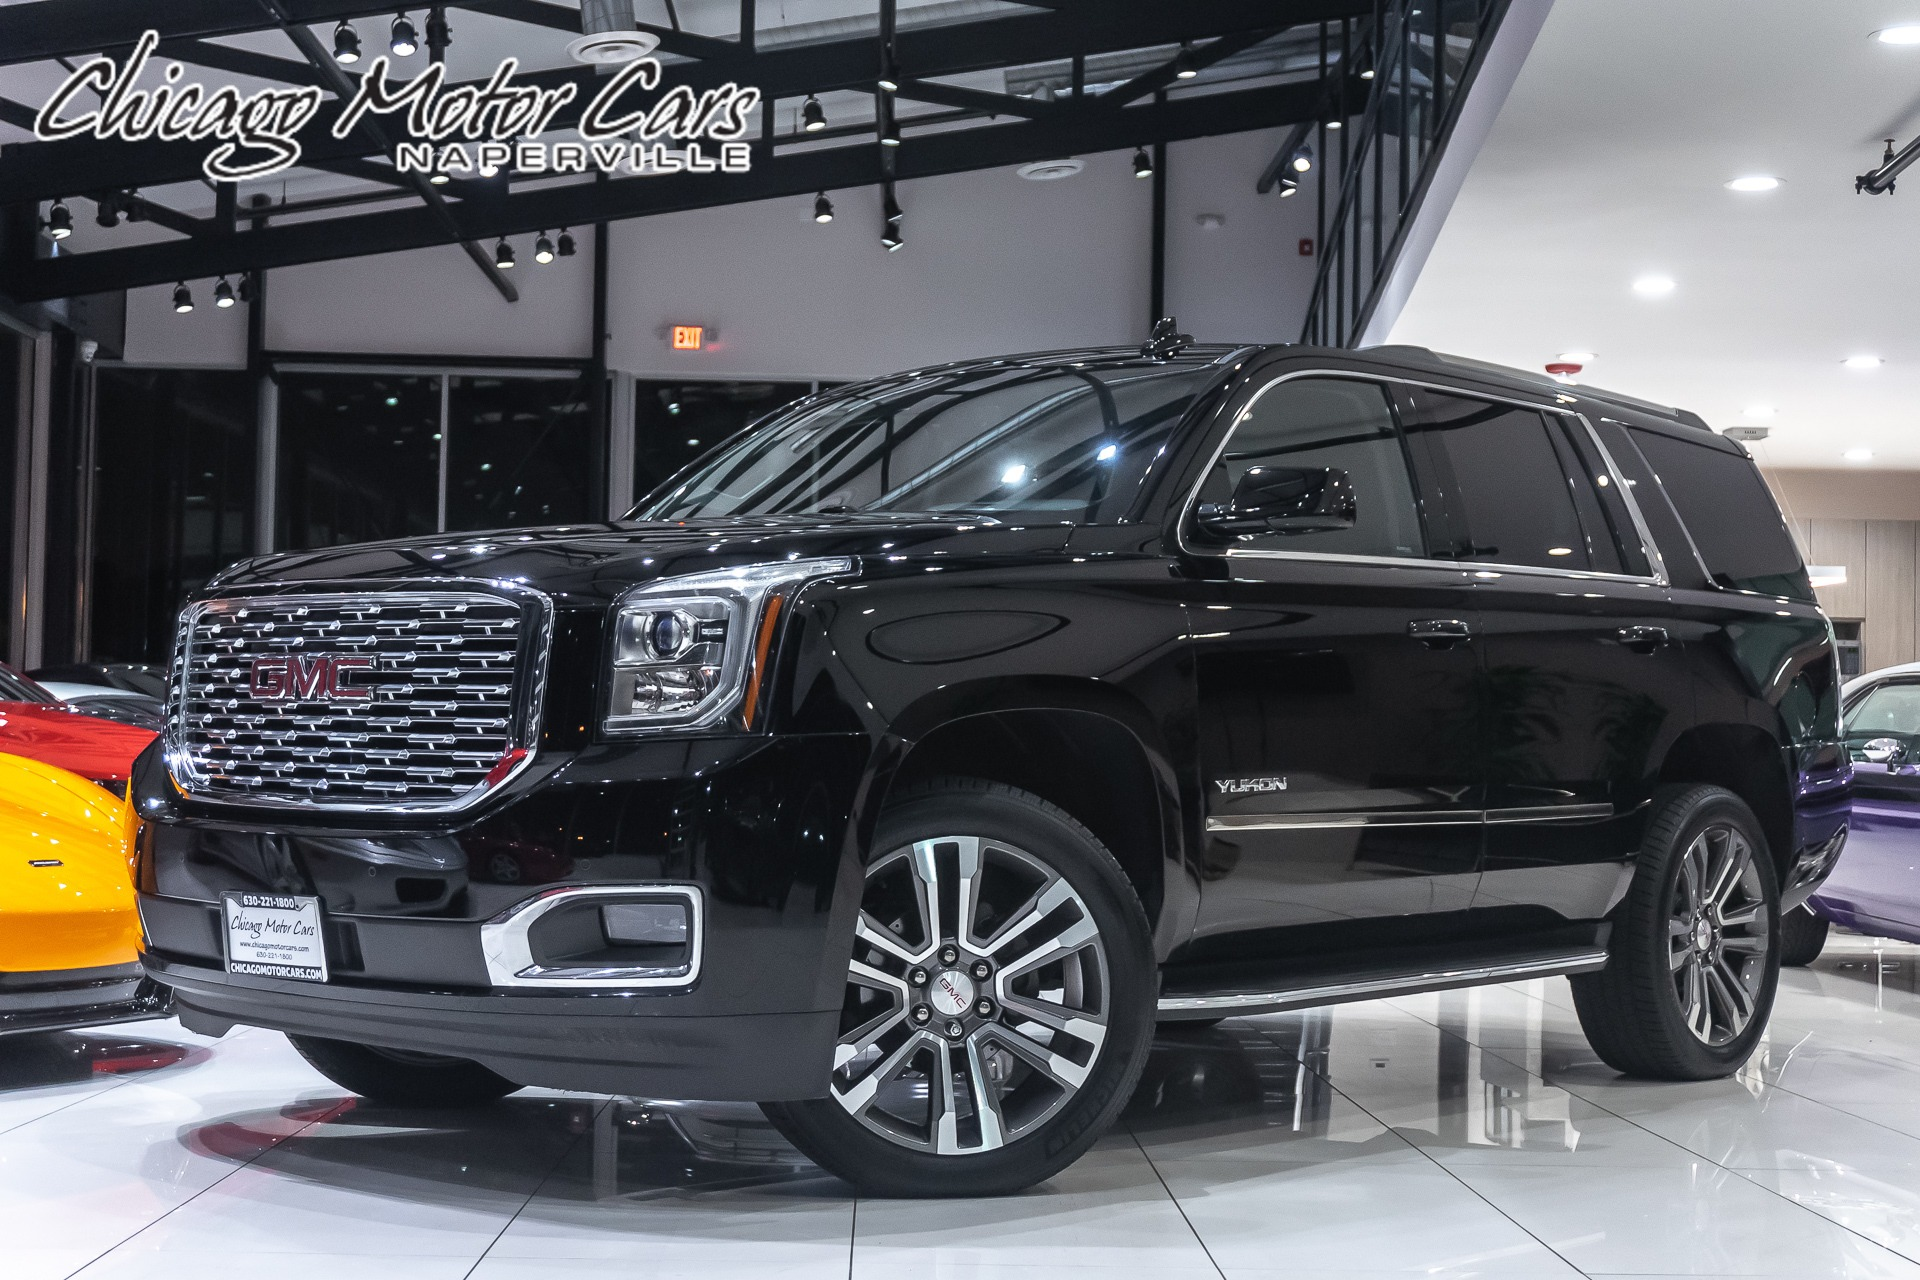 Used 2017 Gmc Yukon Slt For Sale Special Pricing Chicago Motor Cars Stock 16308a